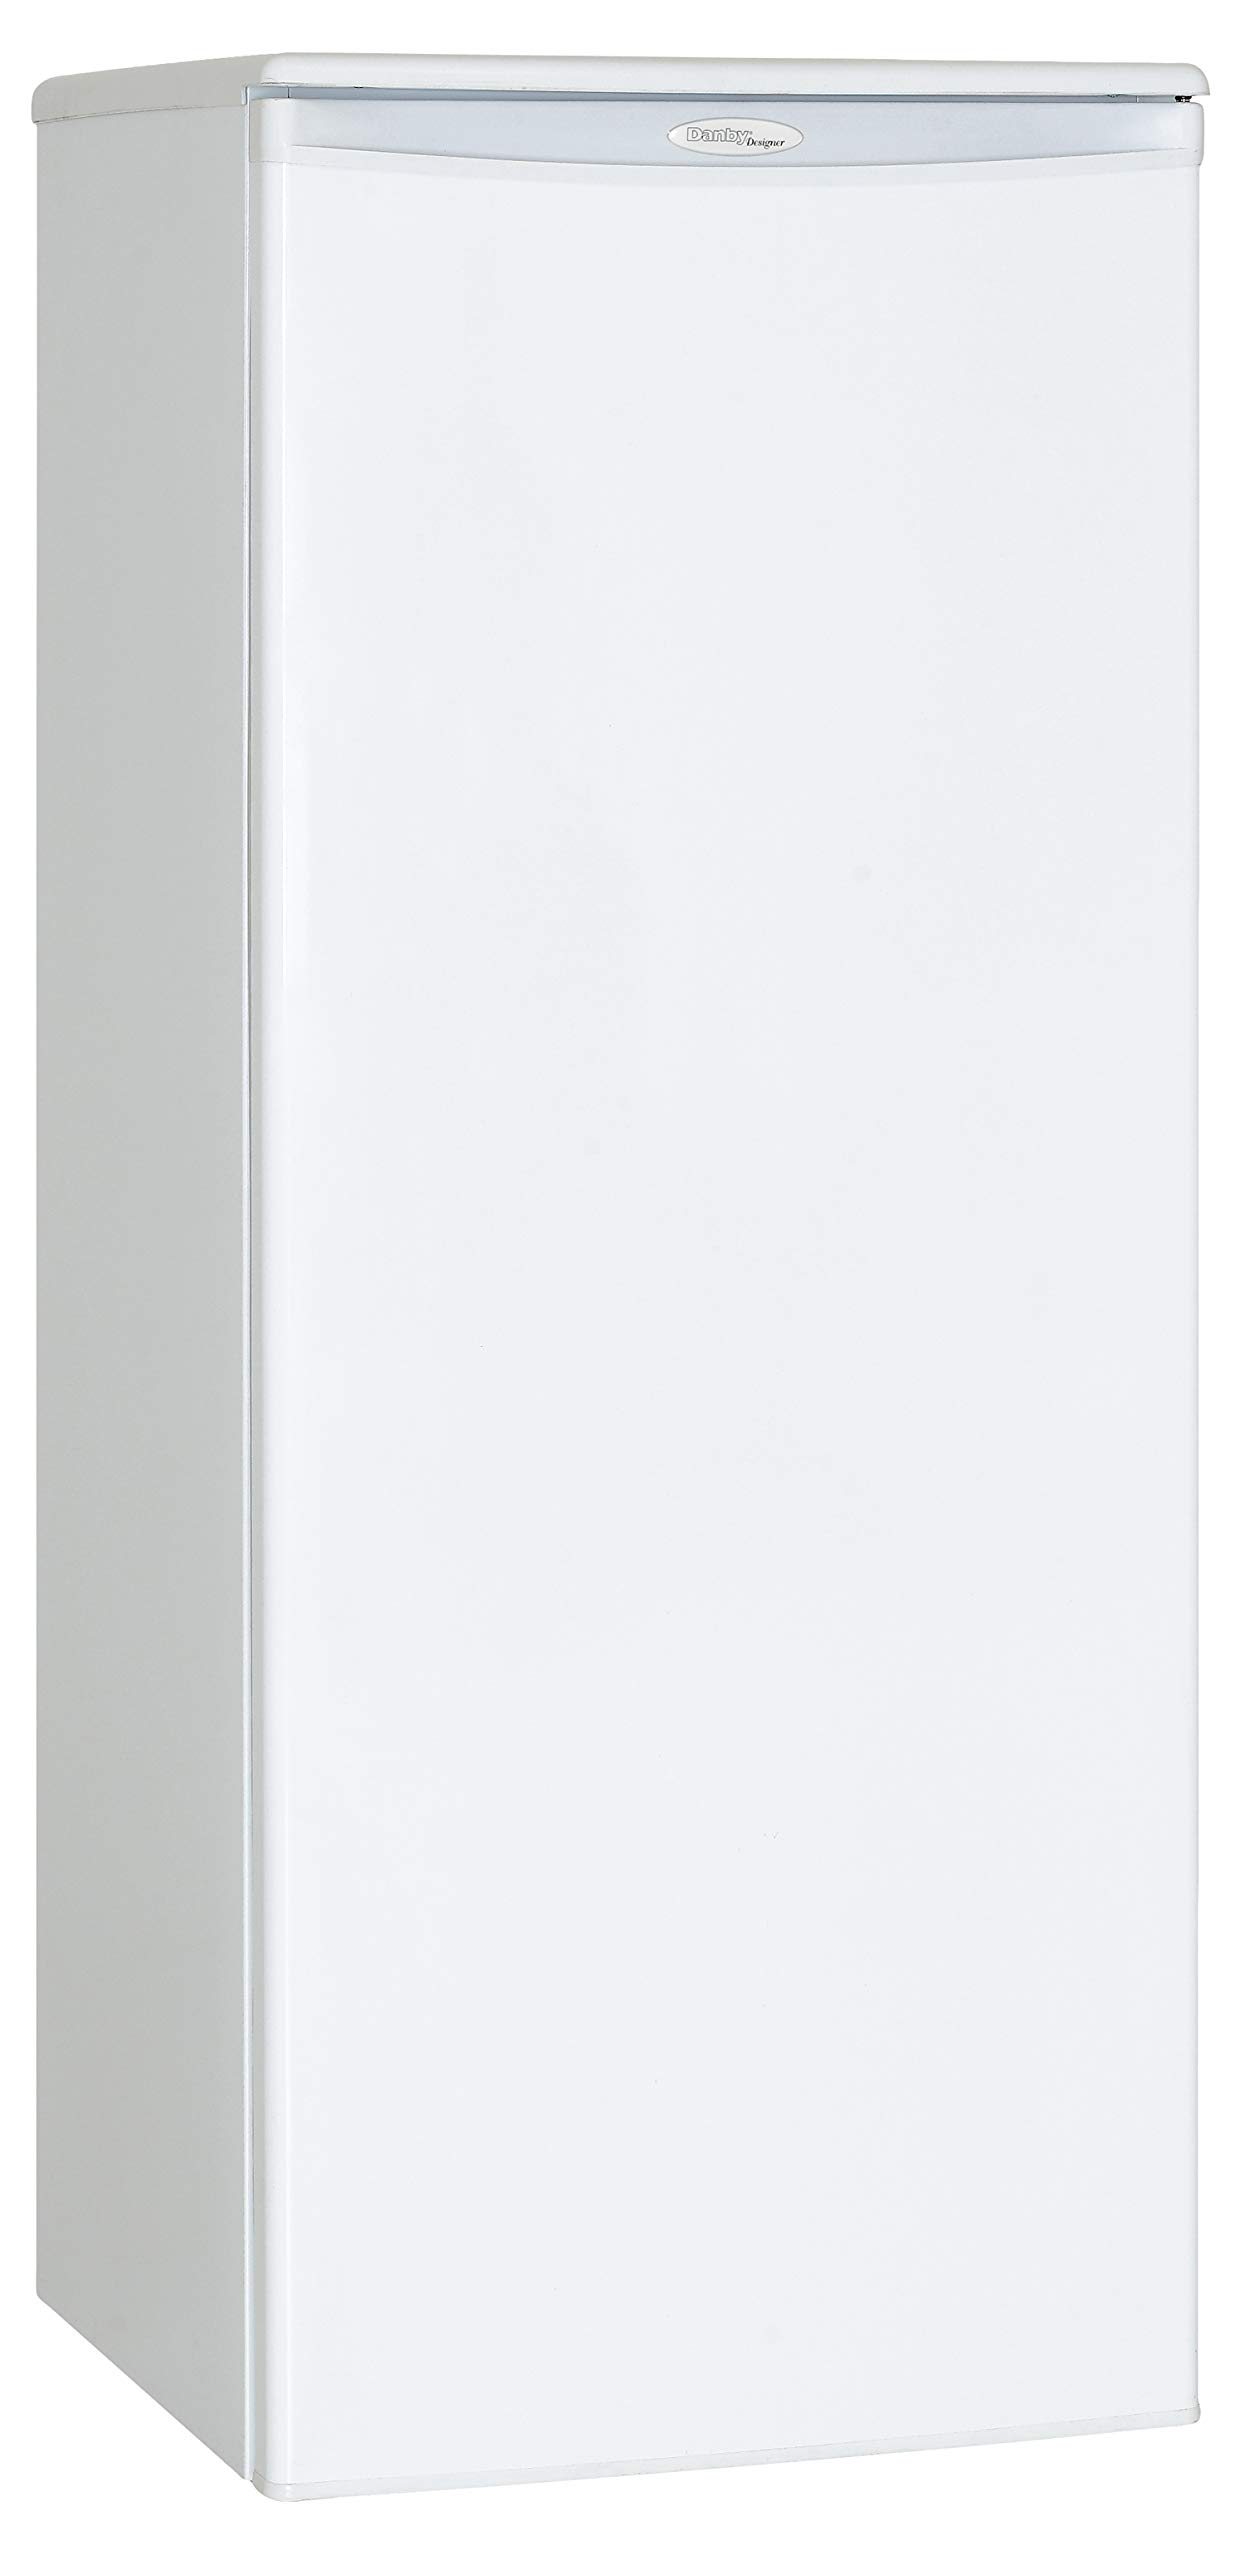 Danby DAR110A1WDD 11 Cu. Ft. All Refrigerator - White by Danby